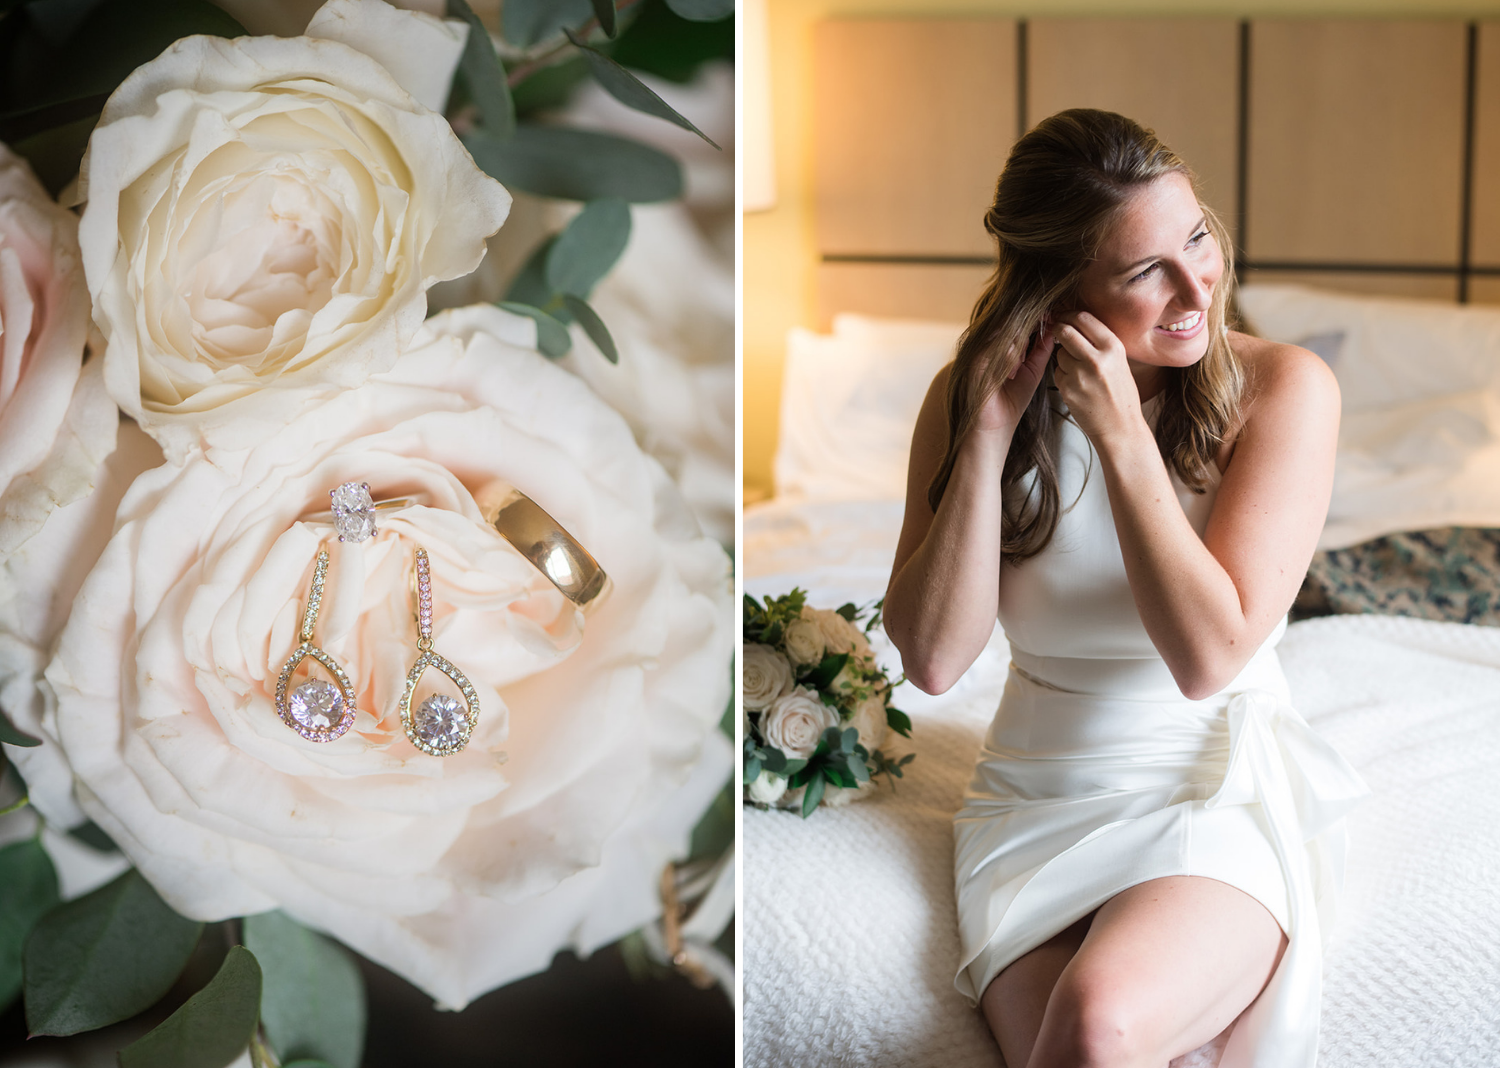 a close up photo of the bride's earrings on a white rose and a photo of the bride putting on her earrings